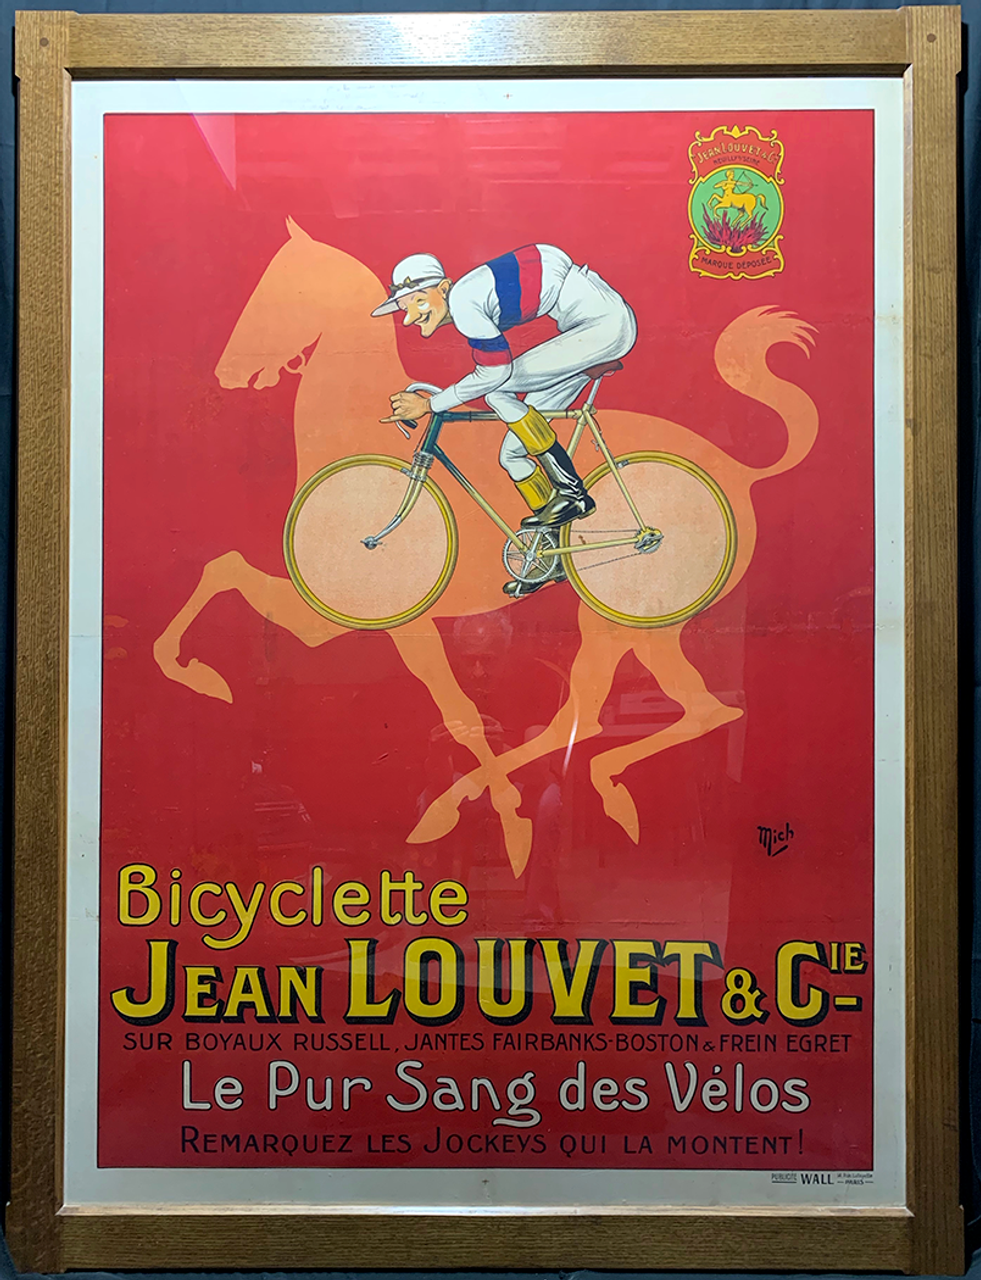 Jean Louvet Original Vintage  Bicycle Poster by Mich